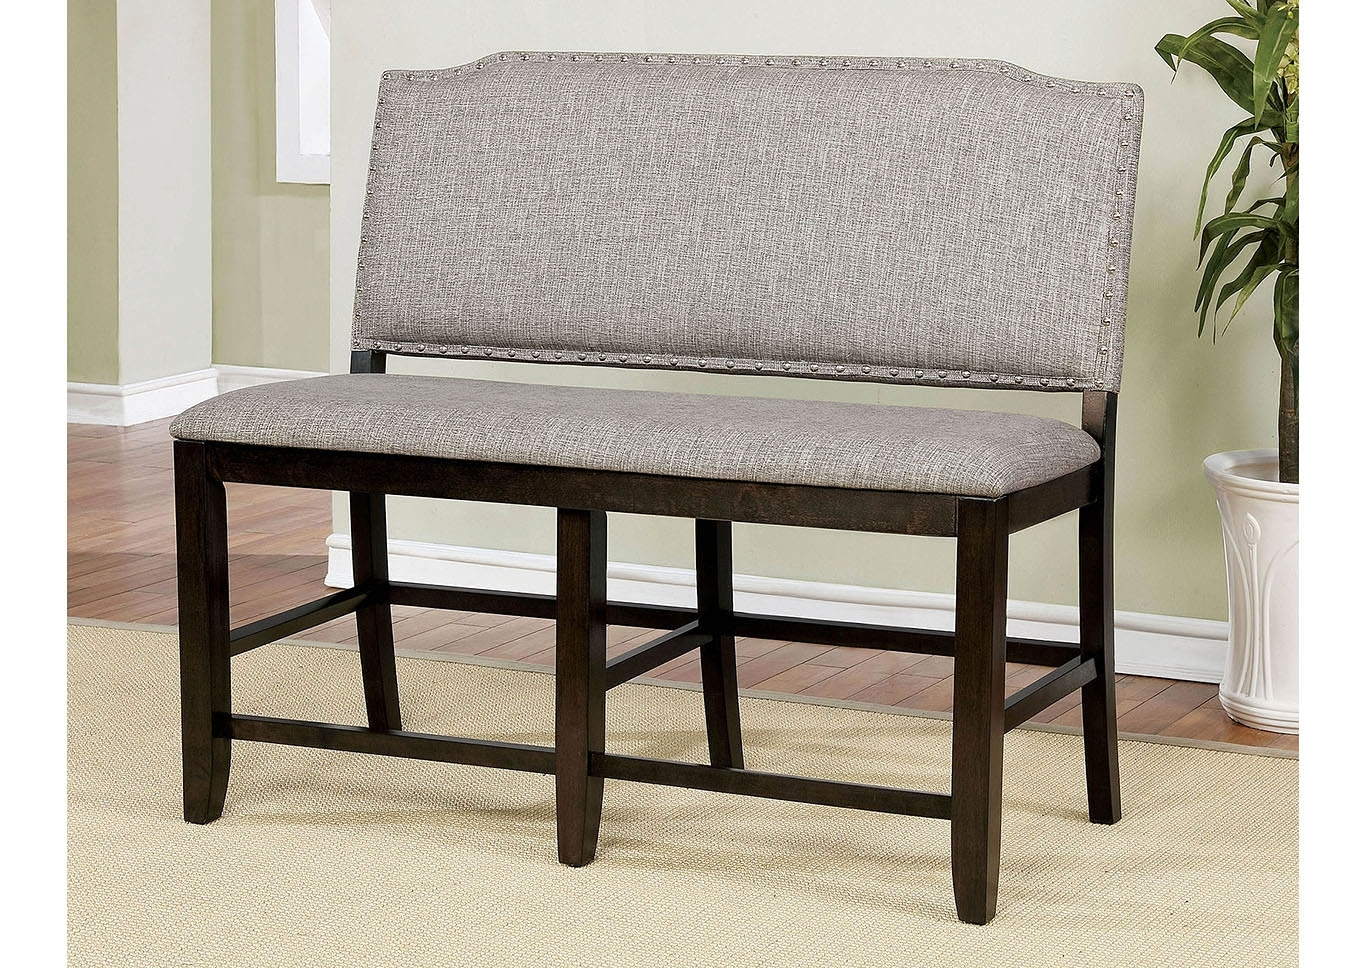 Moreno Valley Furniture Teagan Dark Walnut Counter Height Bench Intended For Most Recently Released Teagan Extension Dining Tables (Image 11 of 20)